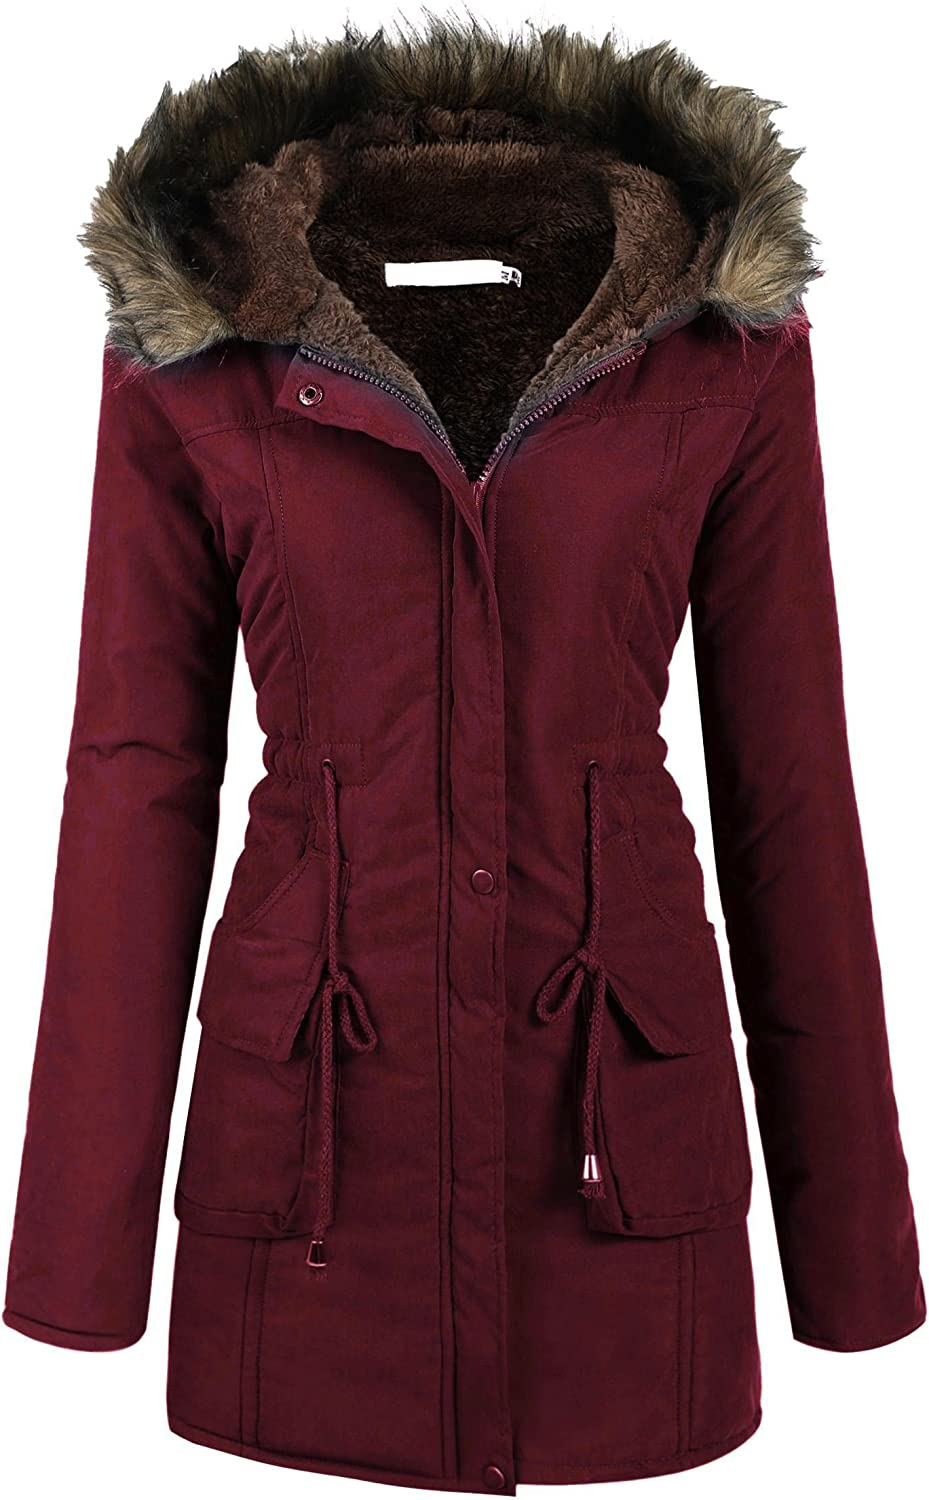 Beyove Womens Hooded Warm Winter Coats with Faux Fur Lined Outerwear Jacket: Clothing